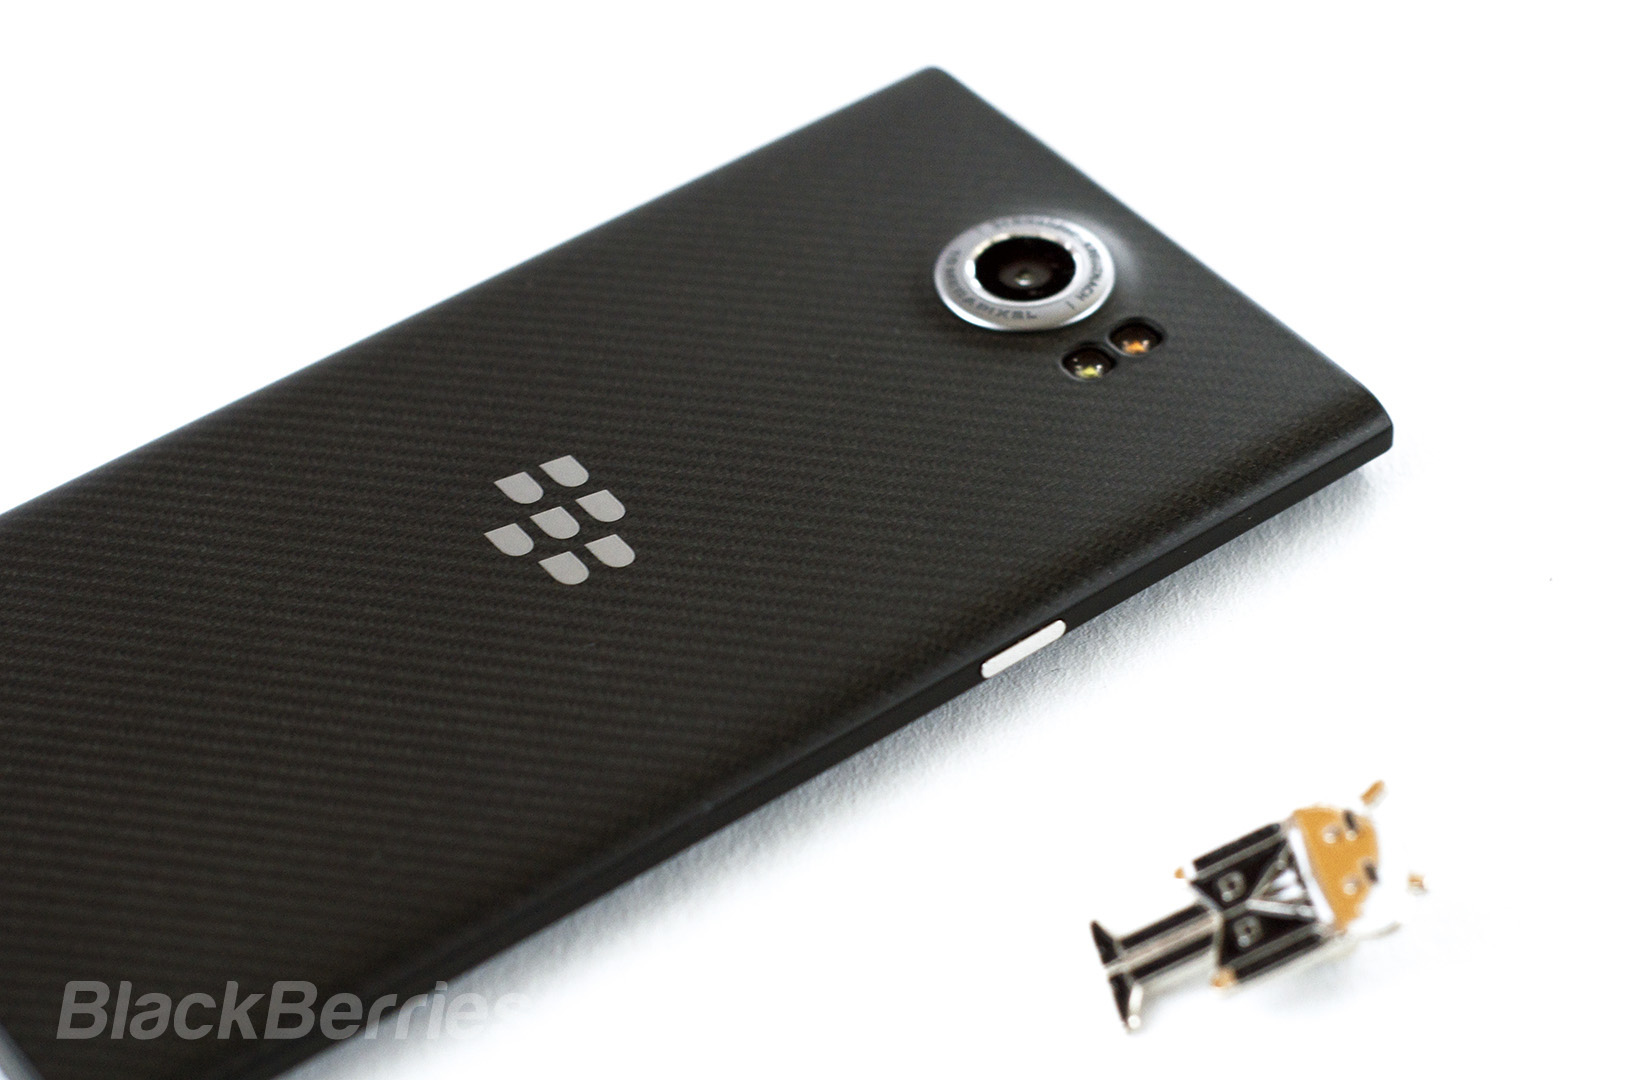 BlackBerry-Priv-Review-132